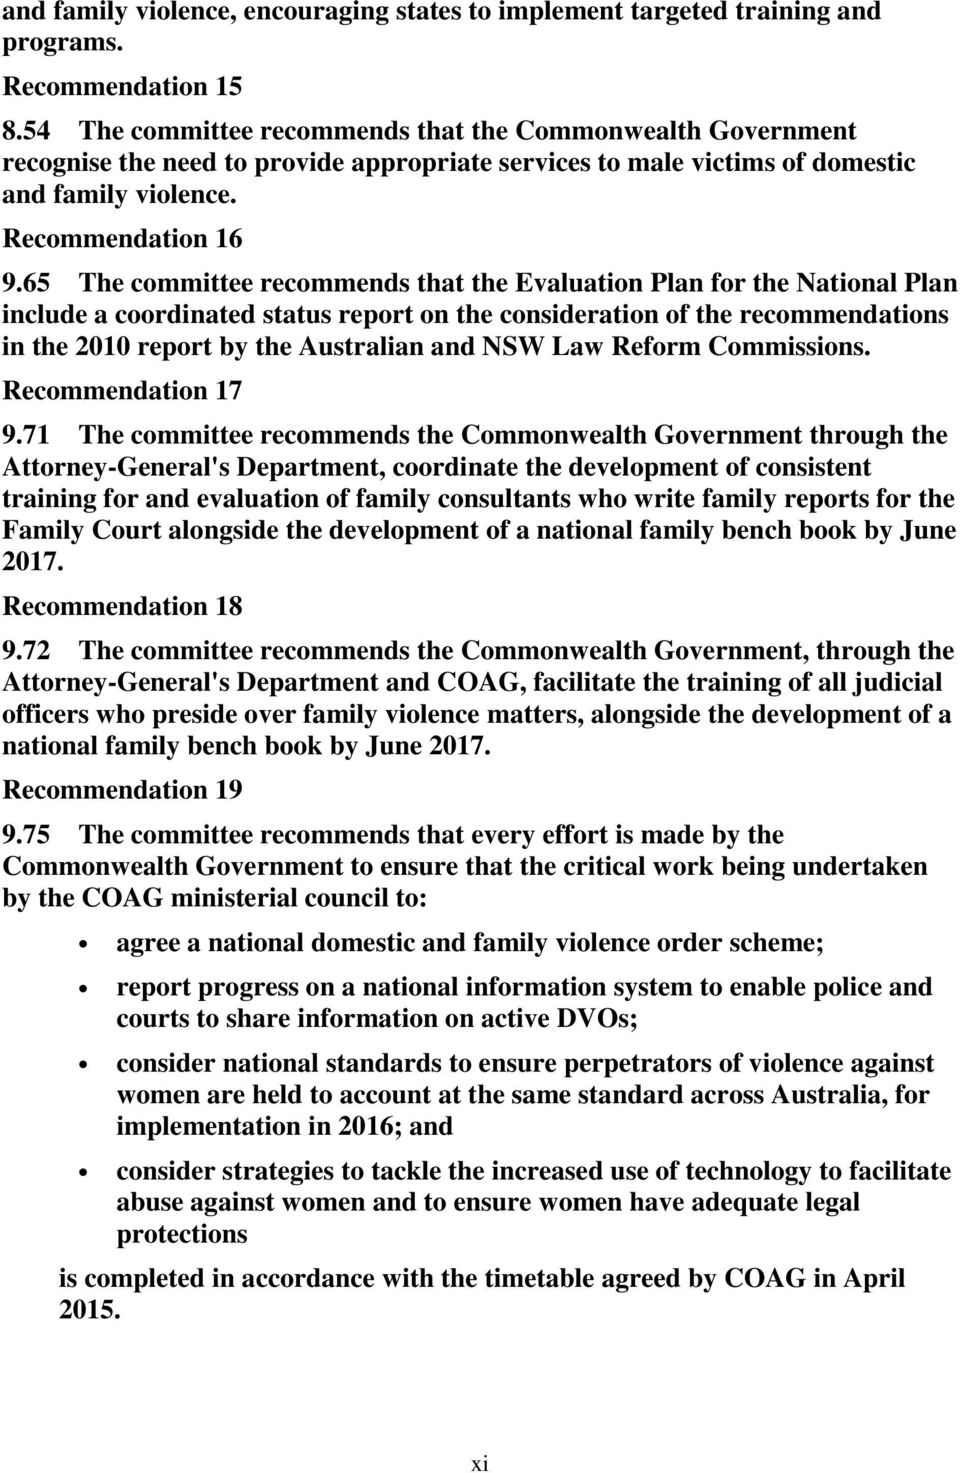 65 The committee recommends that the Evaluation Plan for the National Plan include a coordinated status report on the consideration of the recommendations in the 2010 report by the Australian and NSW